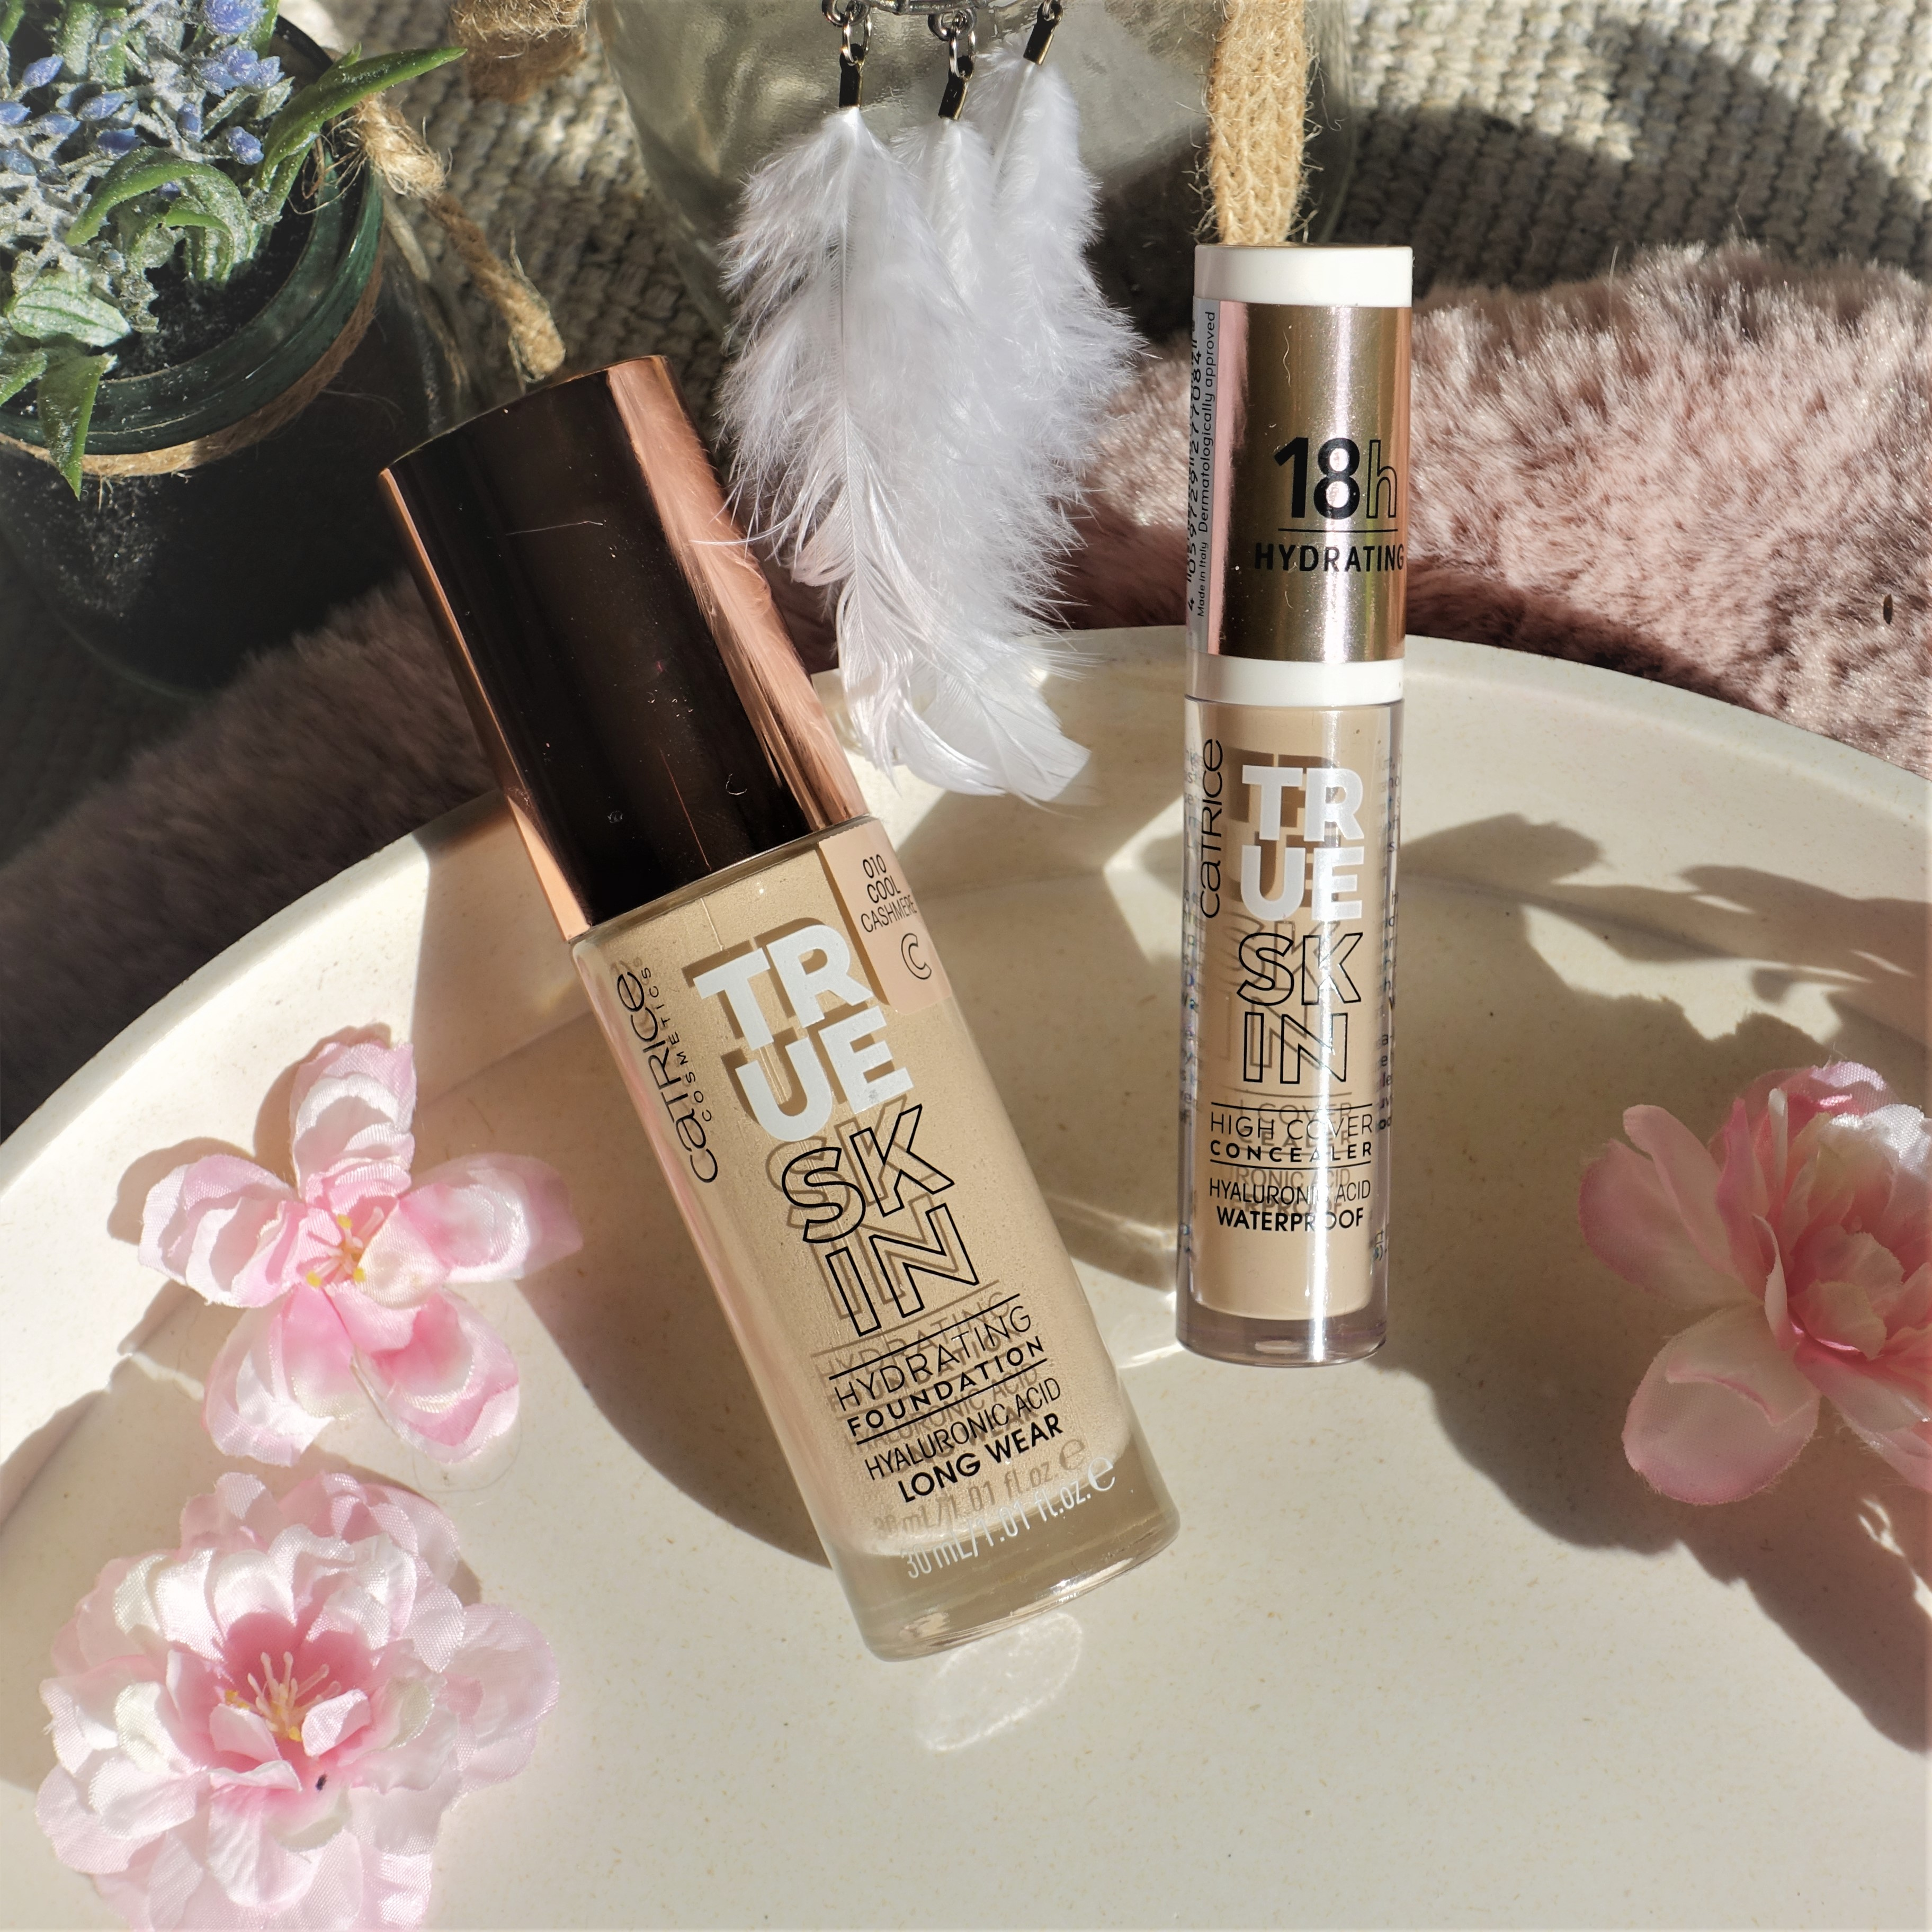 Catrice Cosmetics *It Pieces* Collection True Skin Foundation and Concealer with Hyaluronic Acid - Review and Wear Test